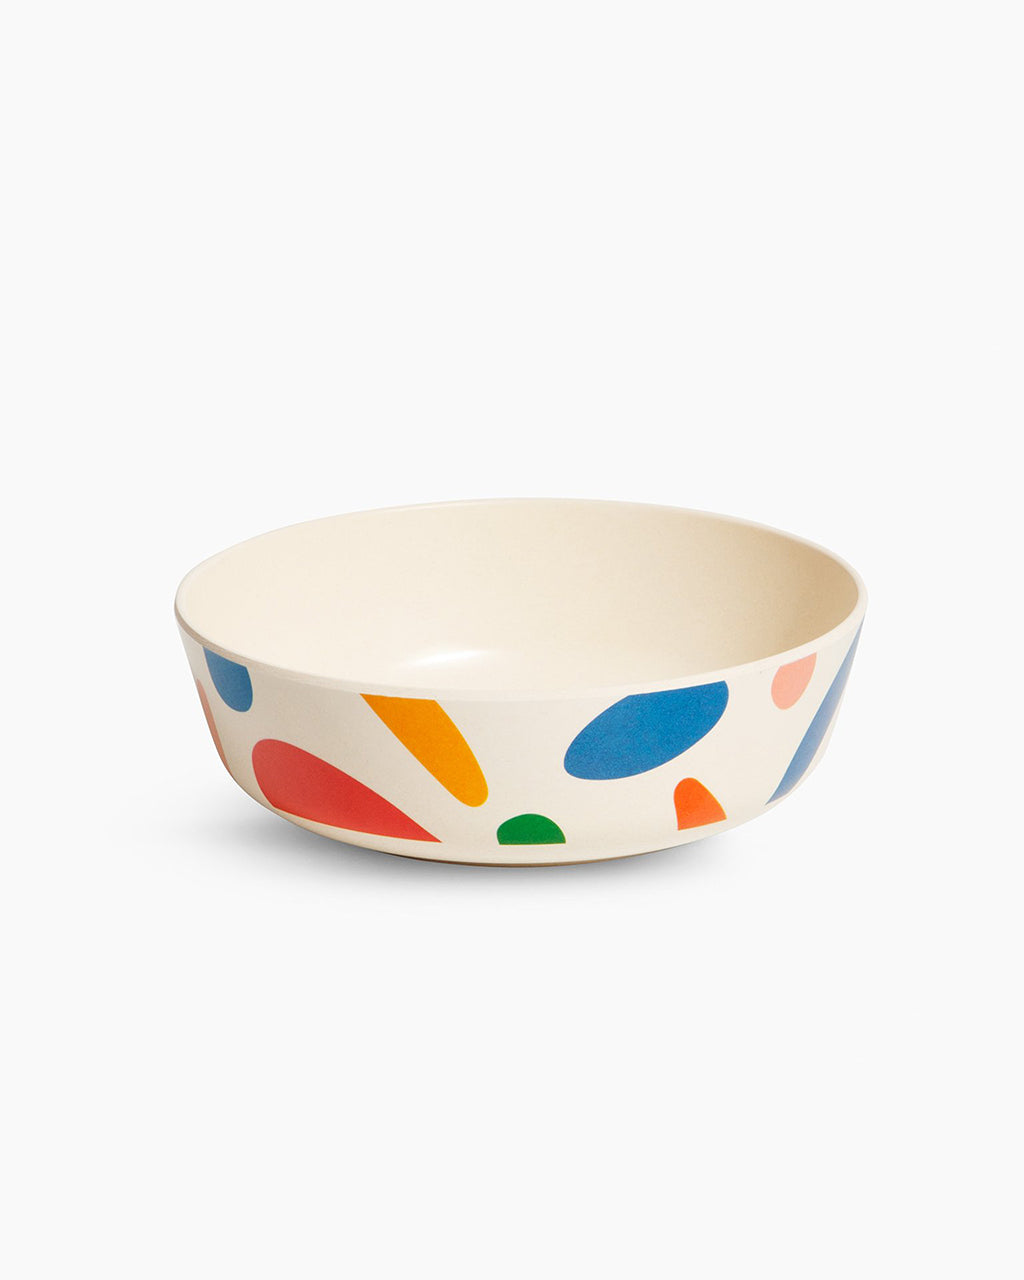 cream colored bowl with multi colored abstract blots